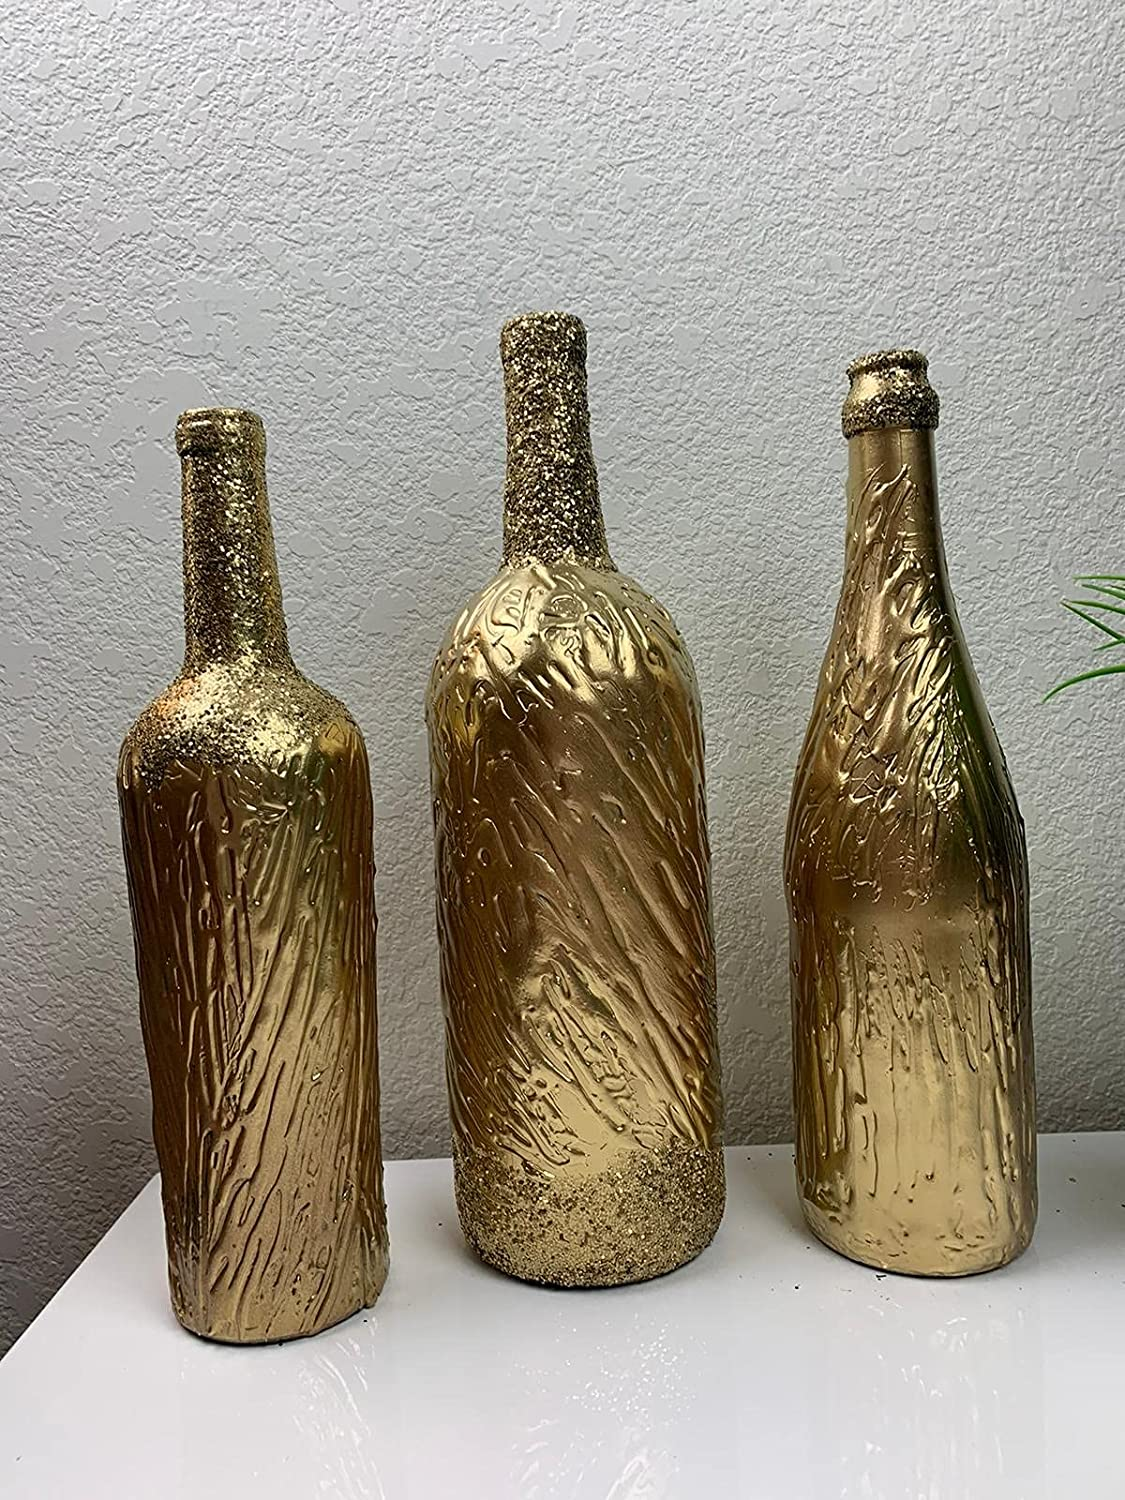 Handcrafted Decorative Bottle Set - Gold Spring new work one after another New arrival Pattern